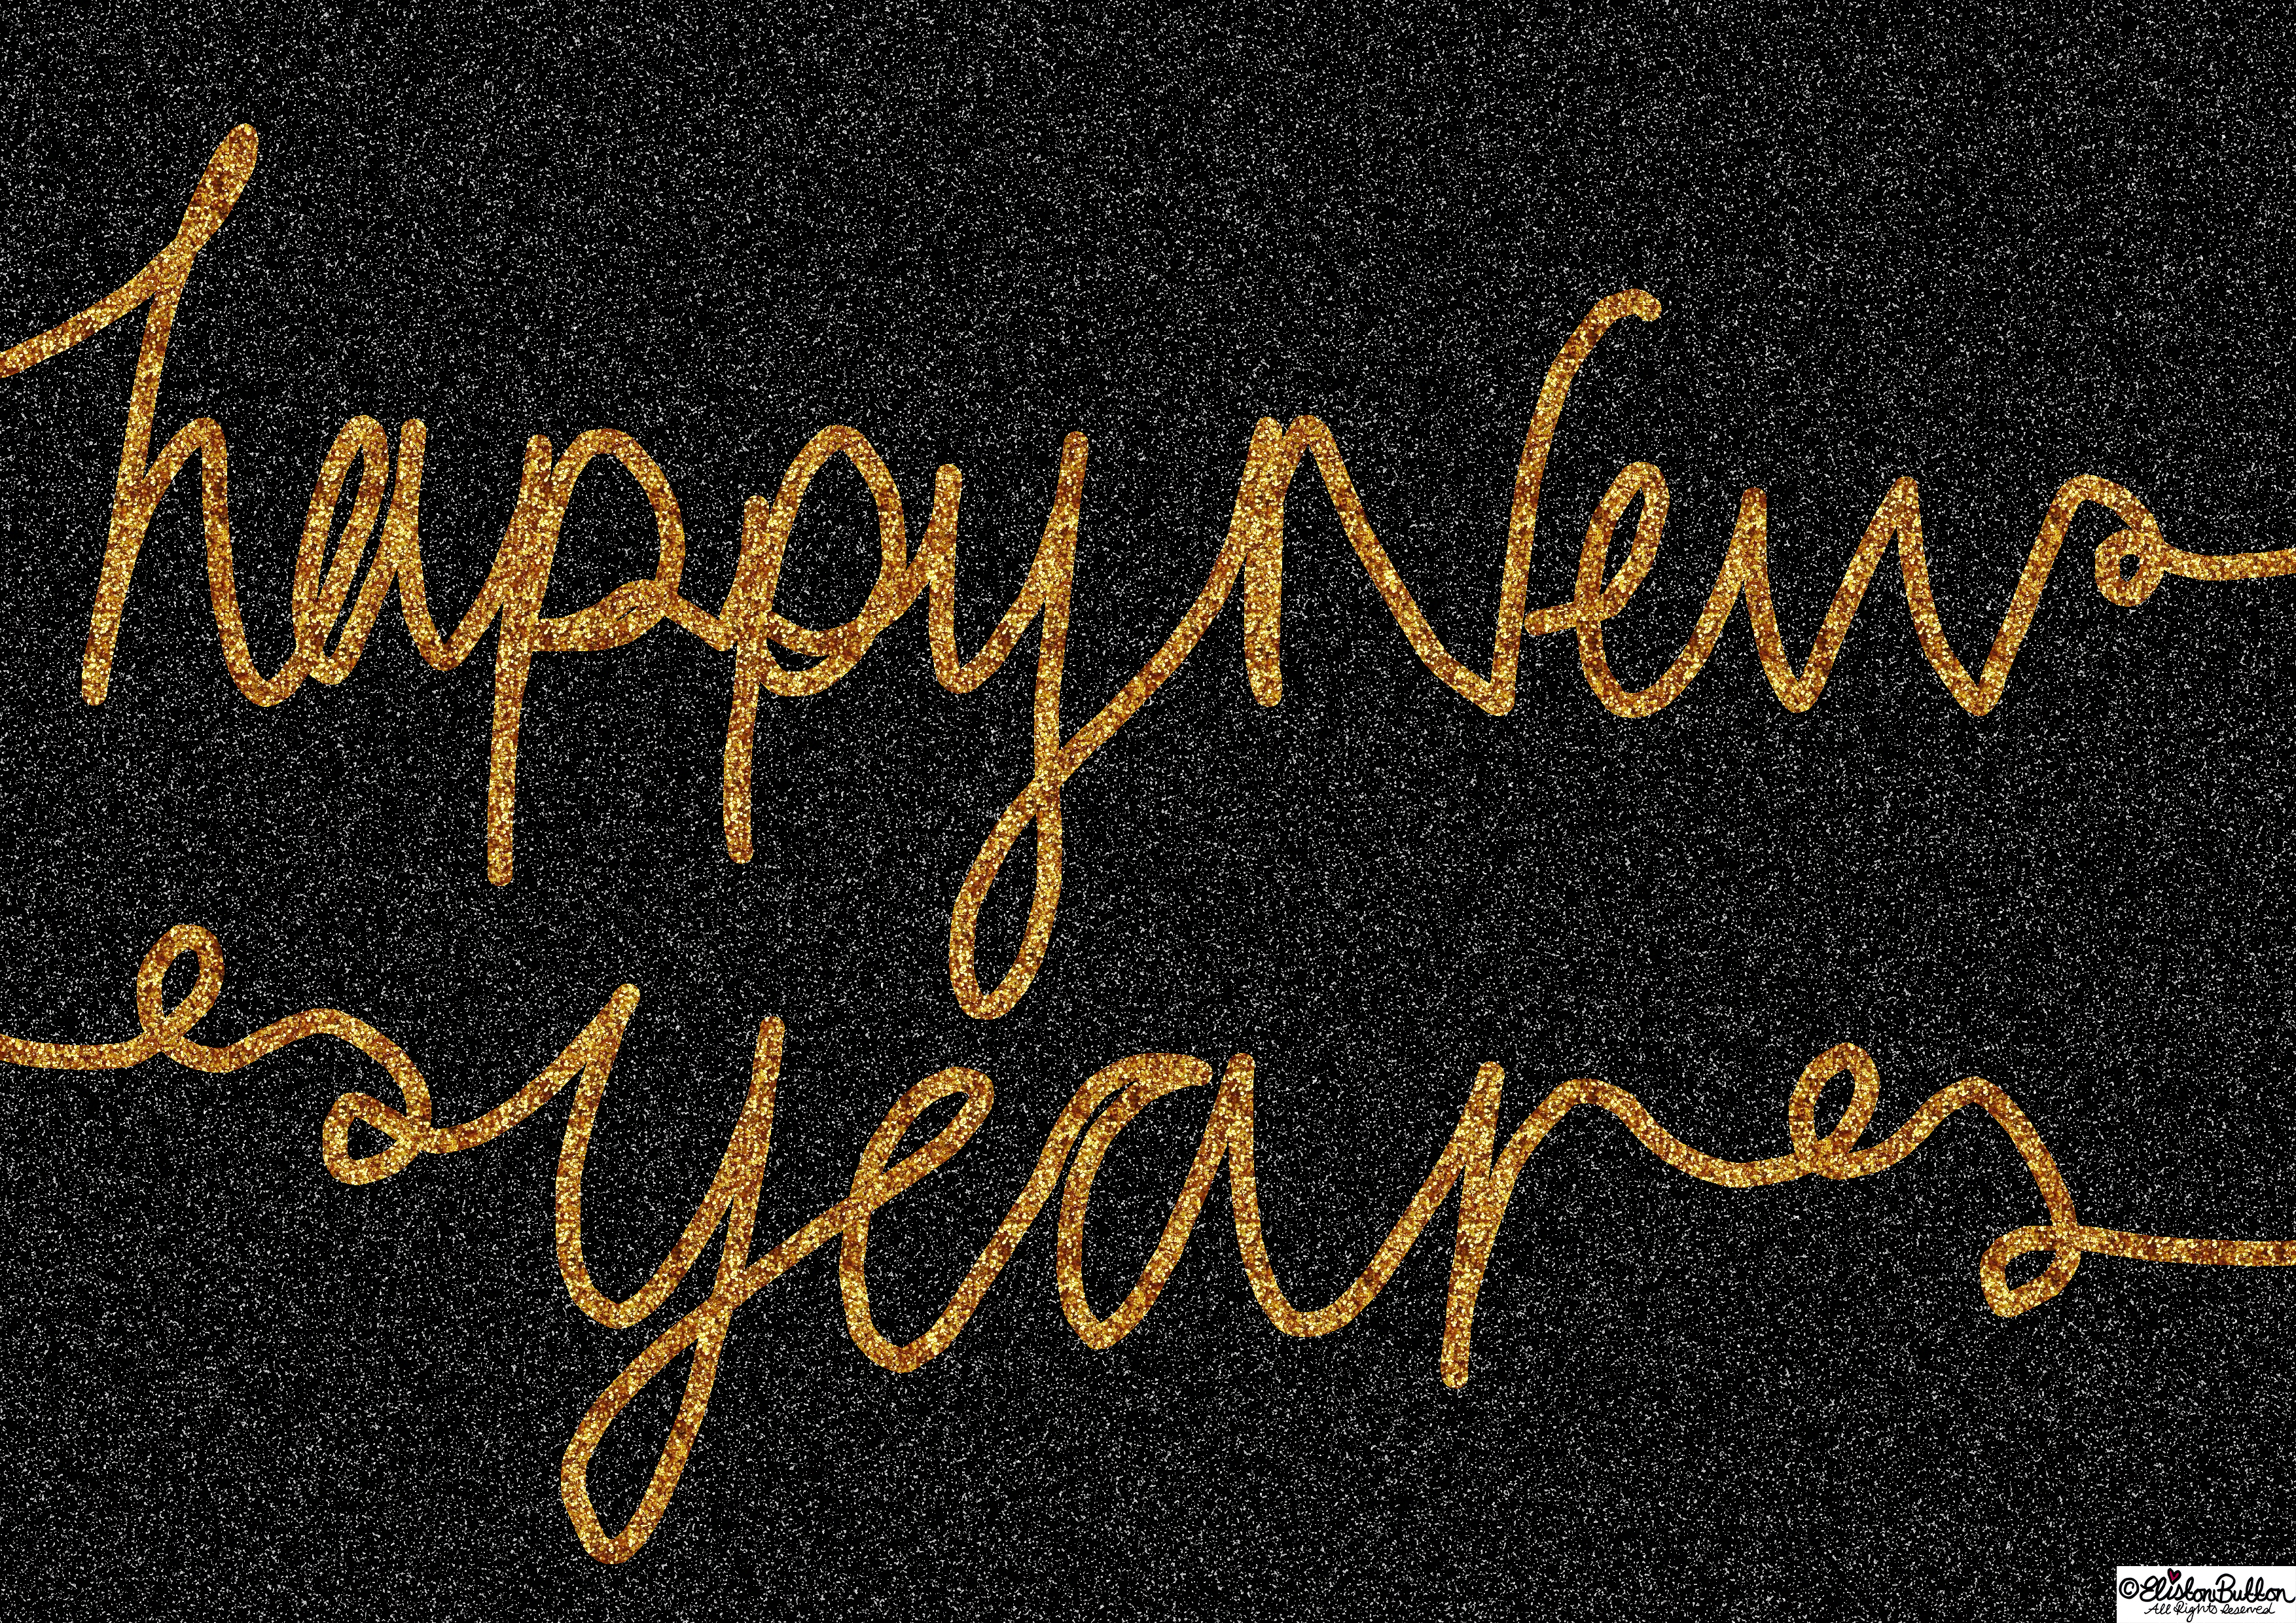 Happy New Year - Merry Christmas, Happy Holidays and a Fabulous New Year at www.elistonbutton.com - Eliston Button - That Crafty Kid – Art, Design, Craft & Adventure.